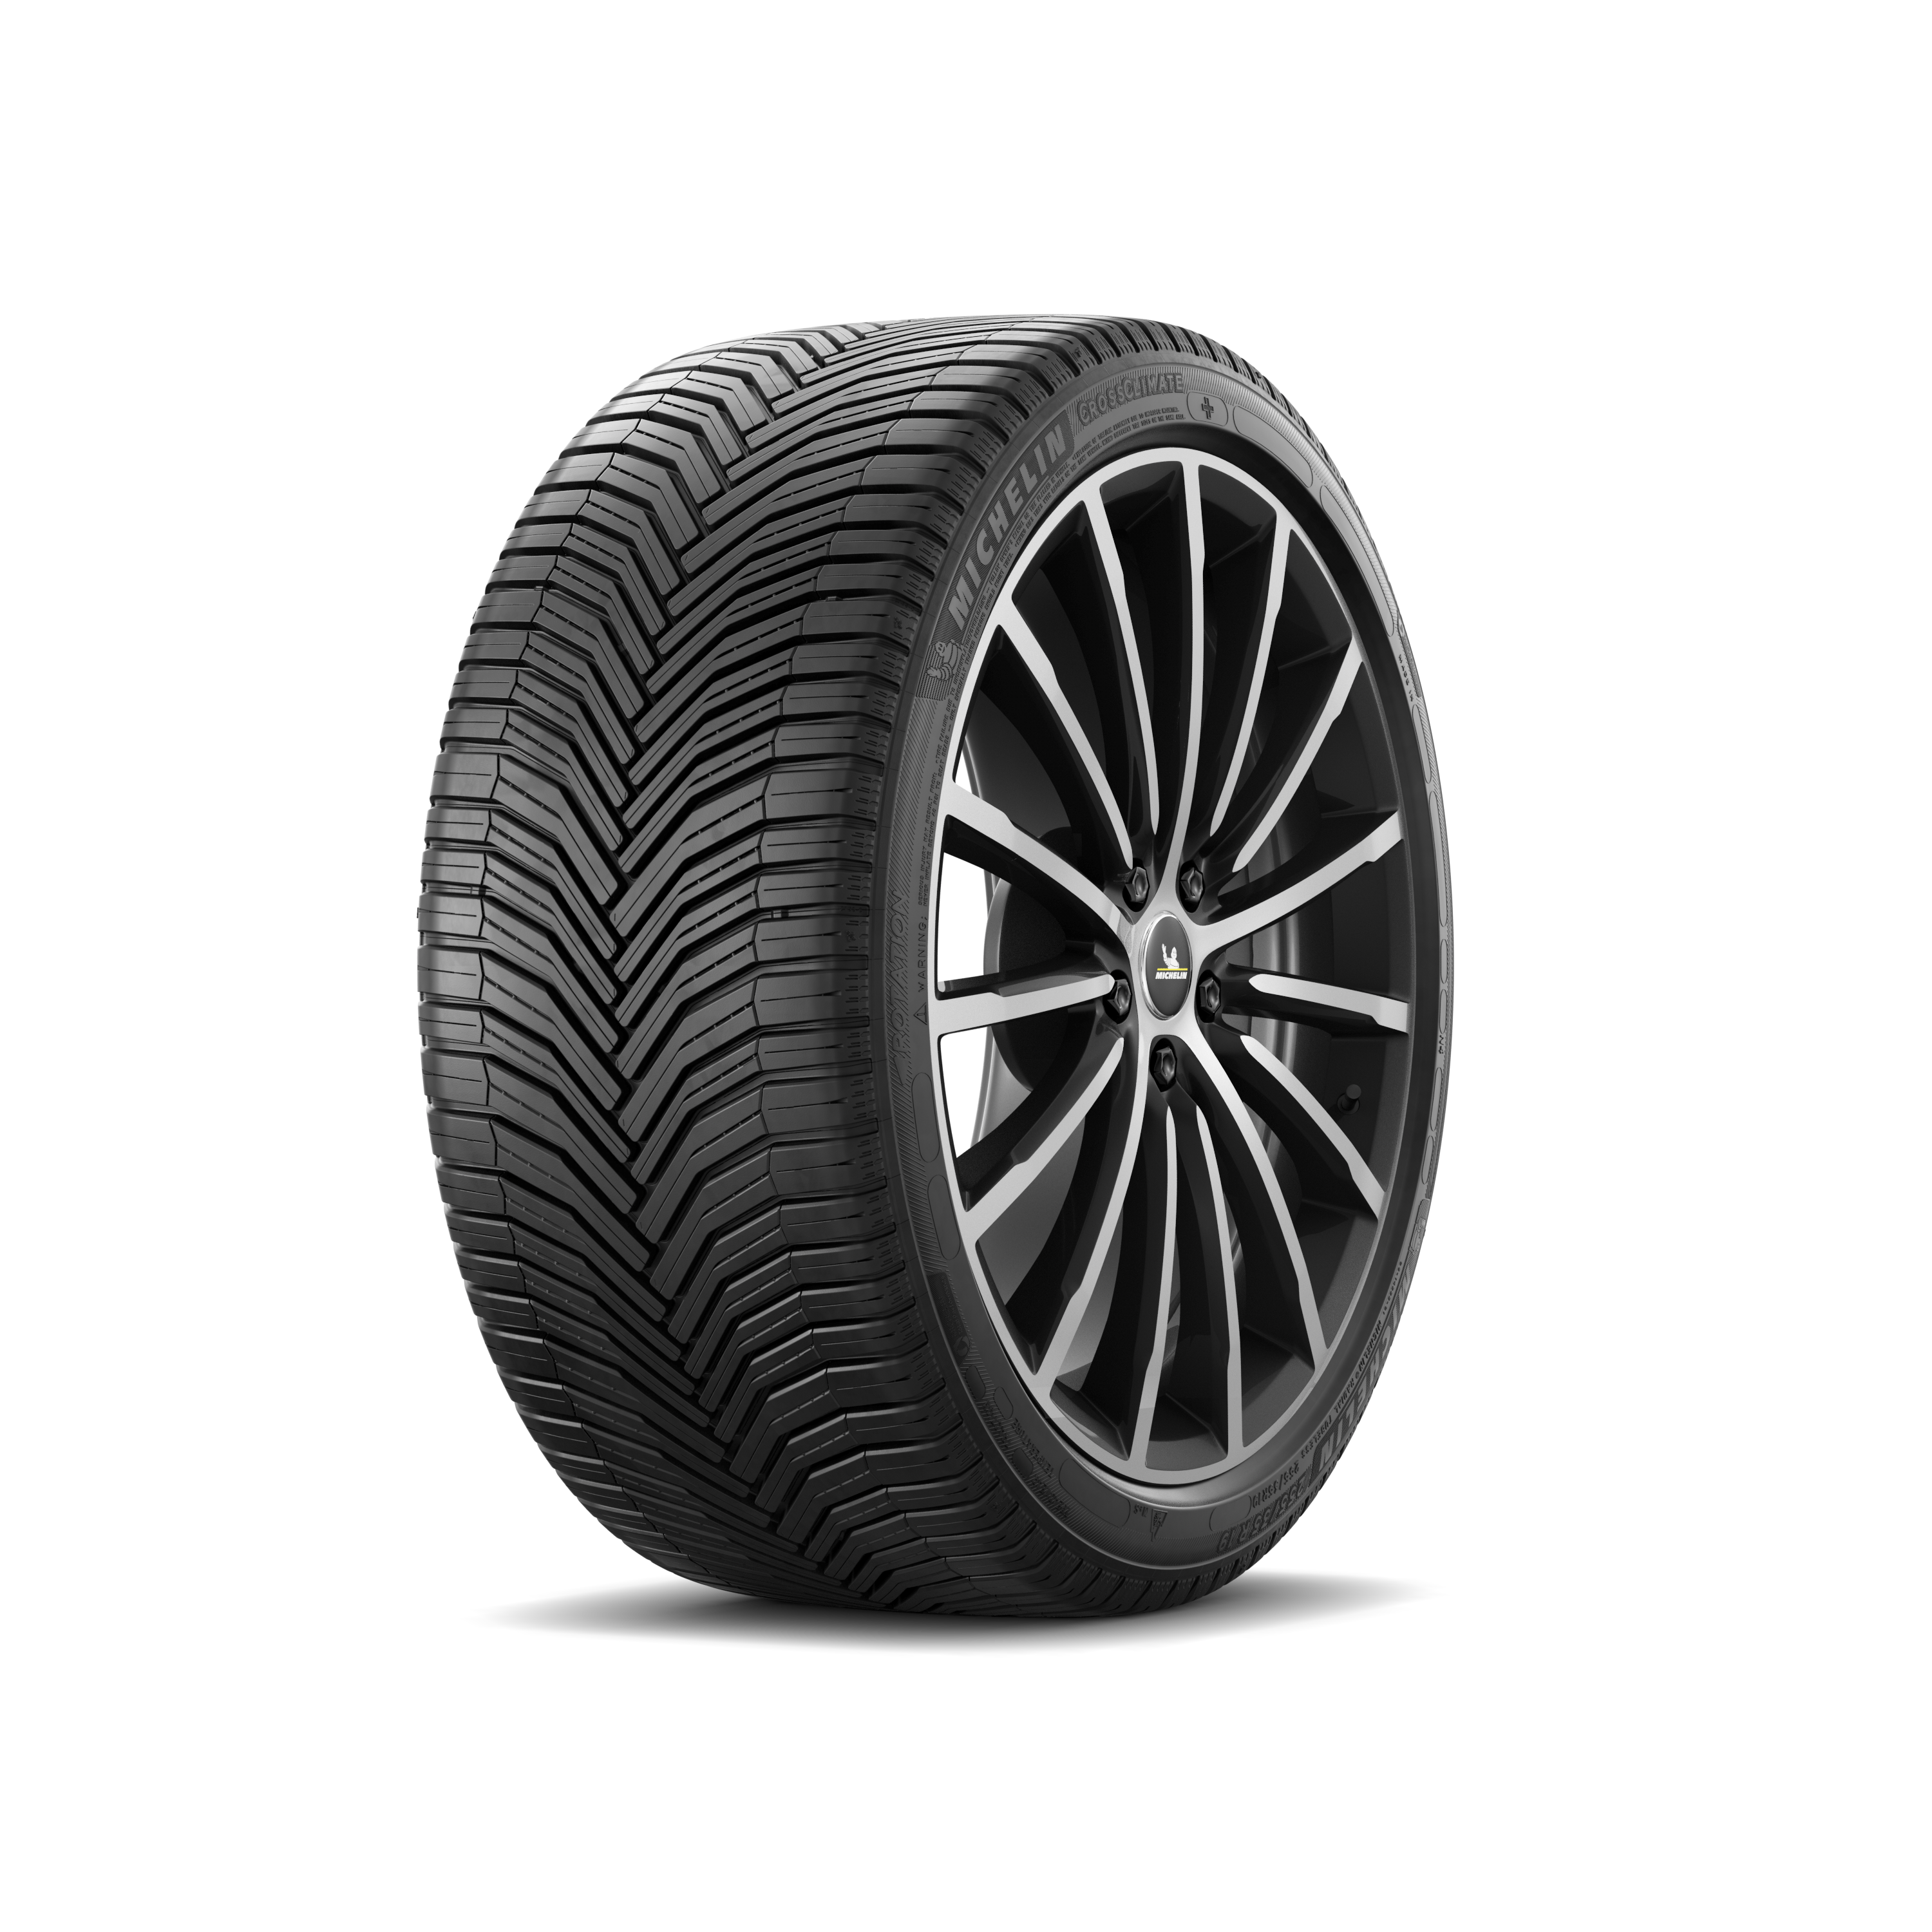 Гуми MICHELIN 185/65R15 92T XL TL CROSSCLIMATE+ MI